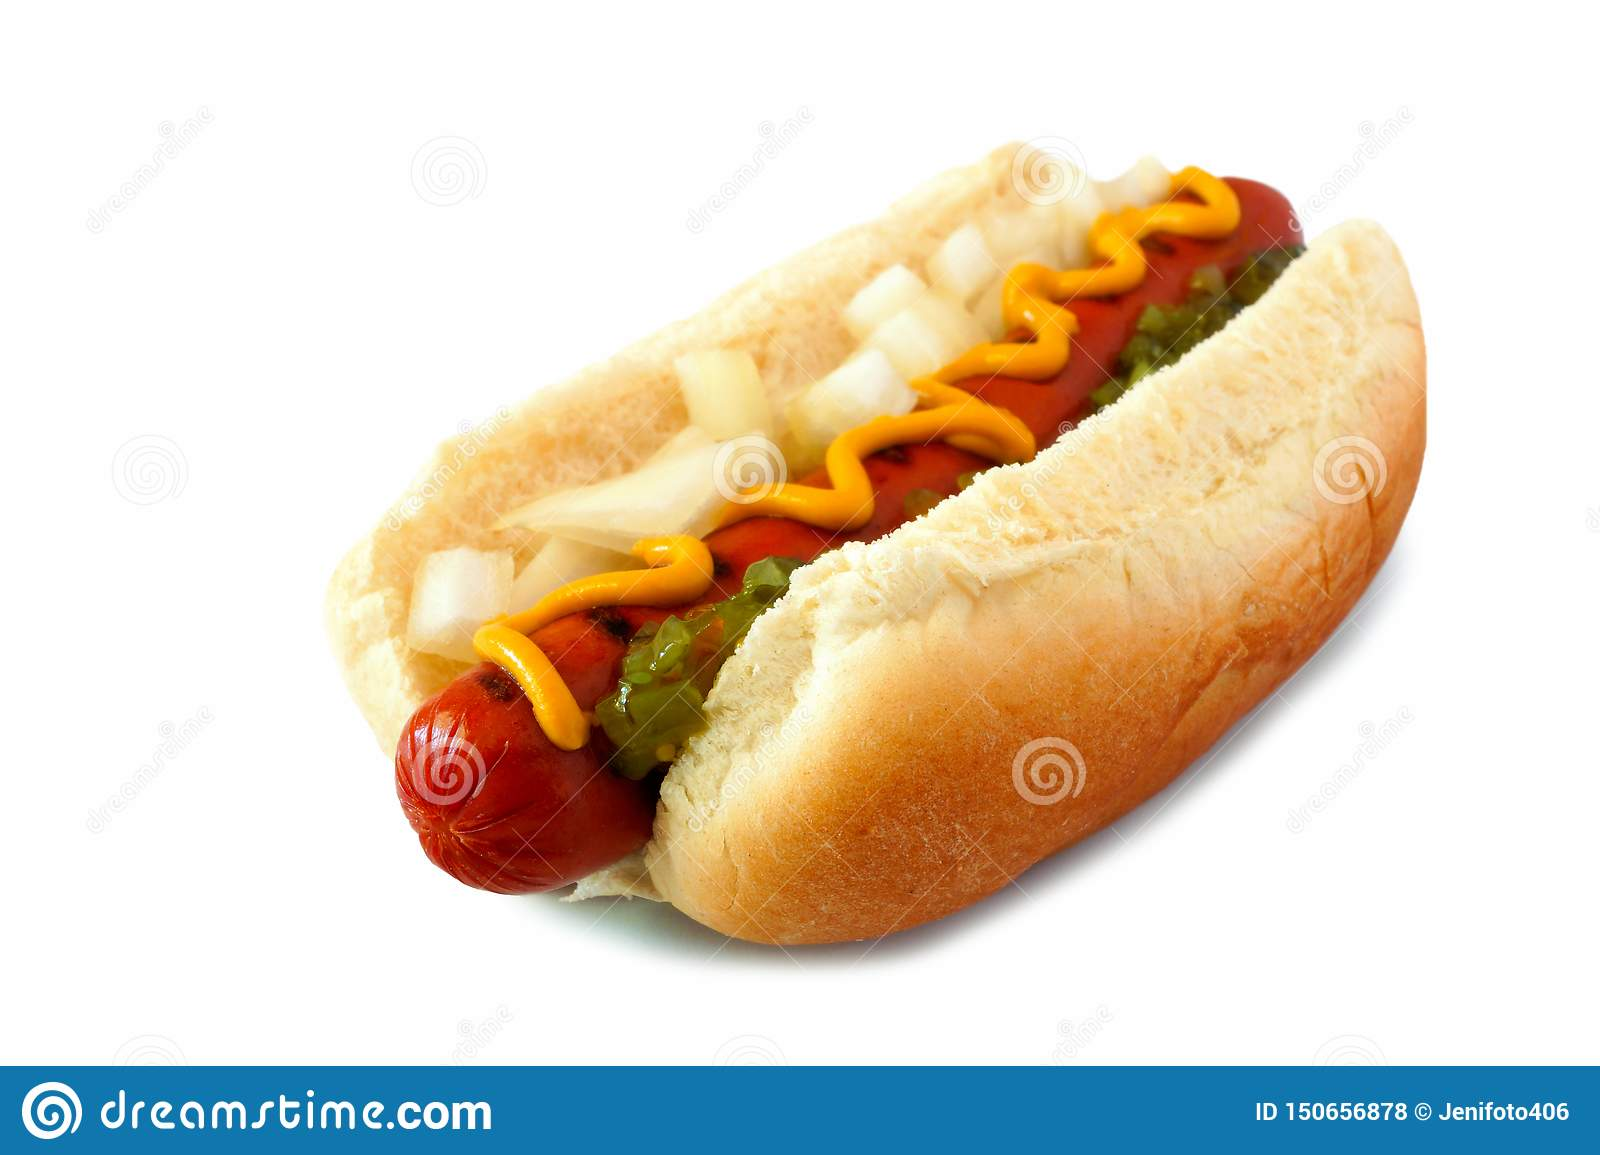 Hot dog with mustard, onions and relish isolated on white